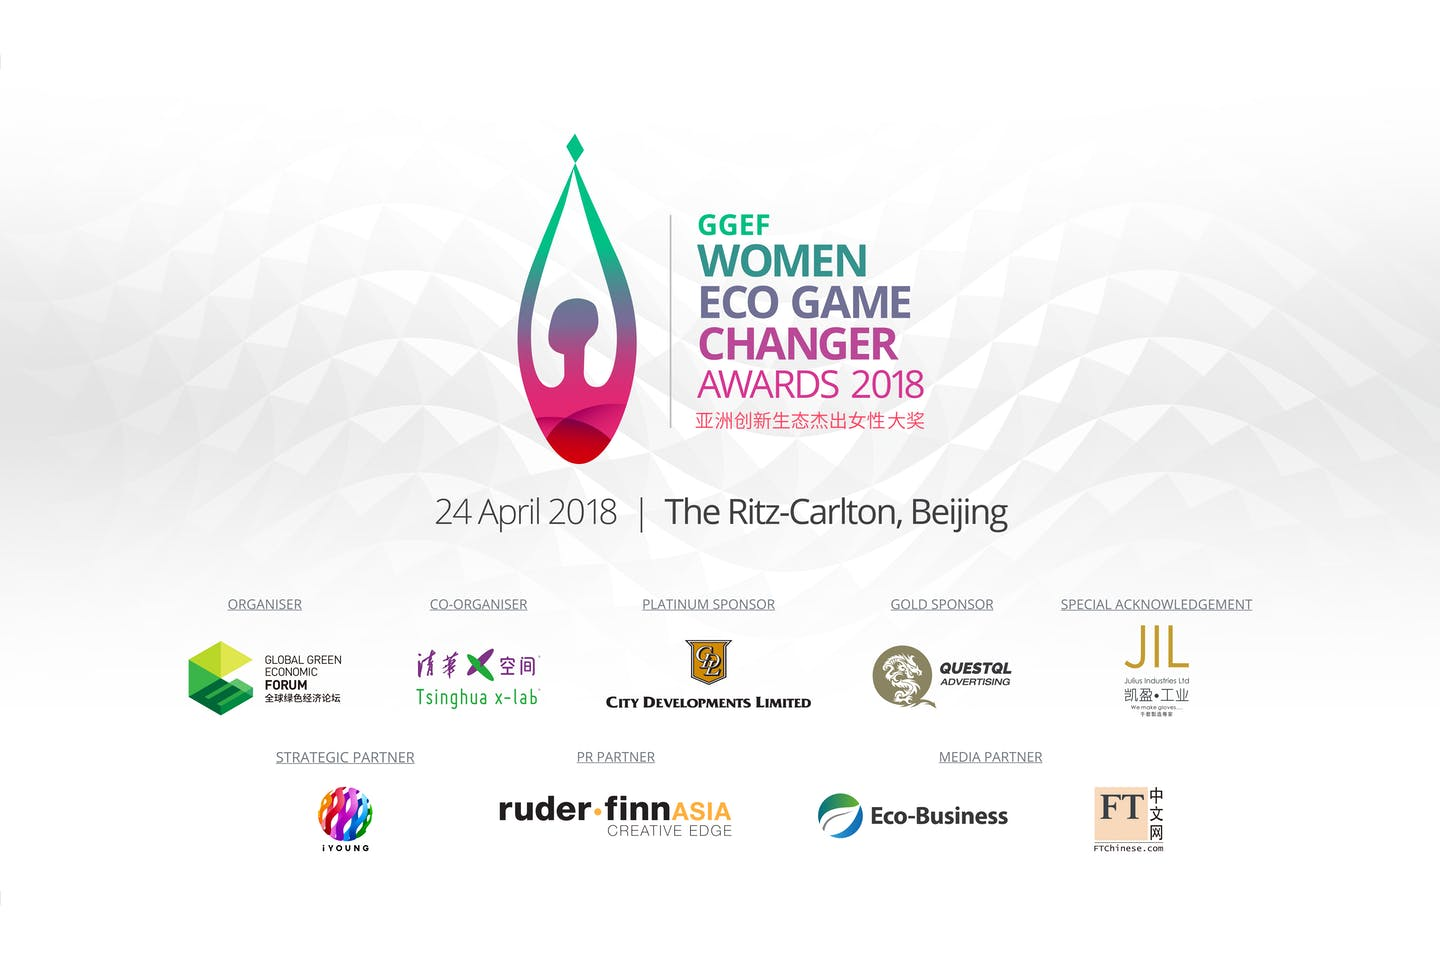 GGEF Women Eco Game Changer Awards announce winners for 2018 in Beijing